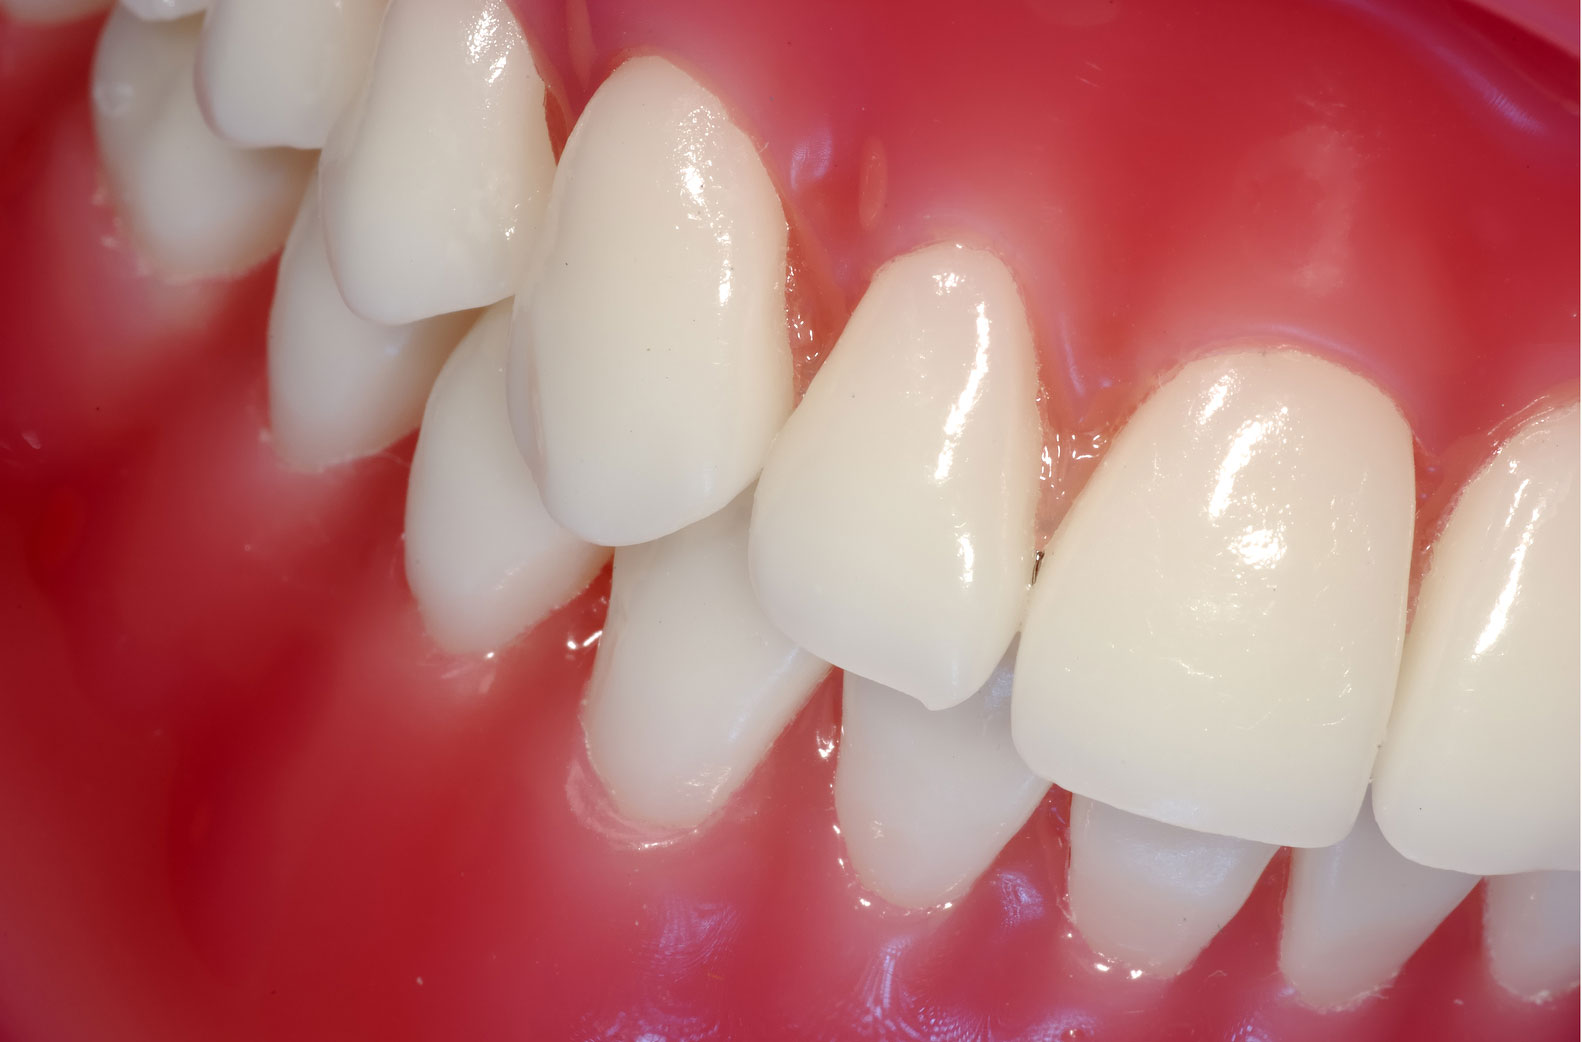 Rejuvenate Your Smile with Porcelain Veneers - Dentist in